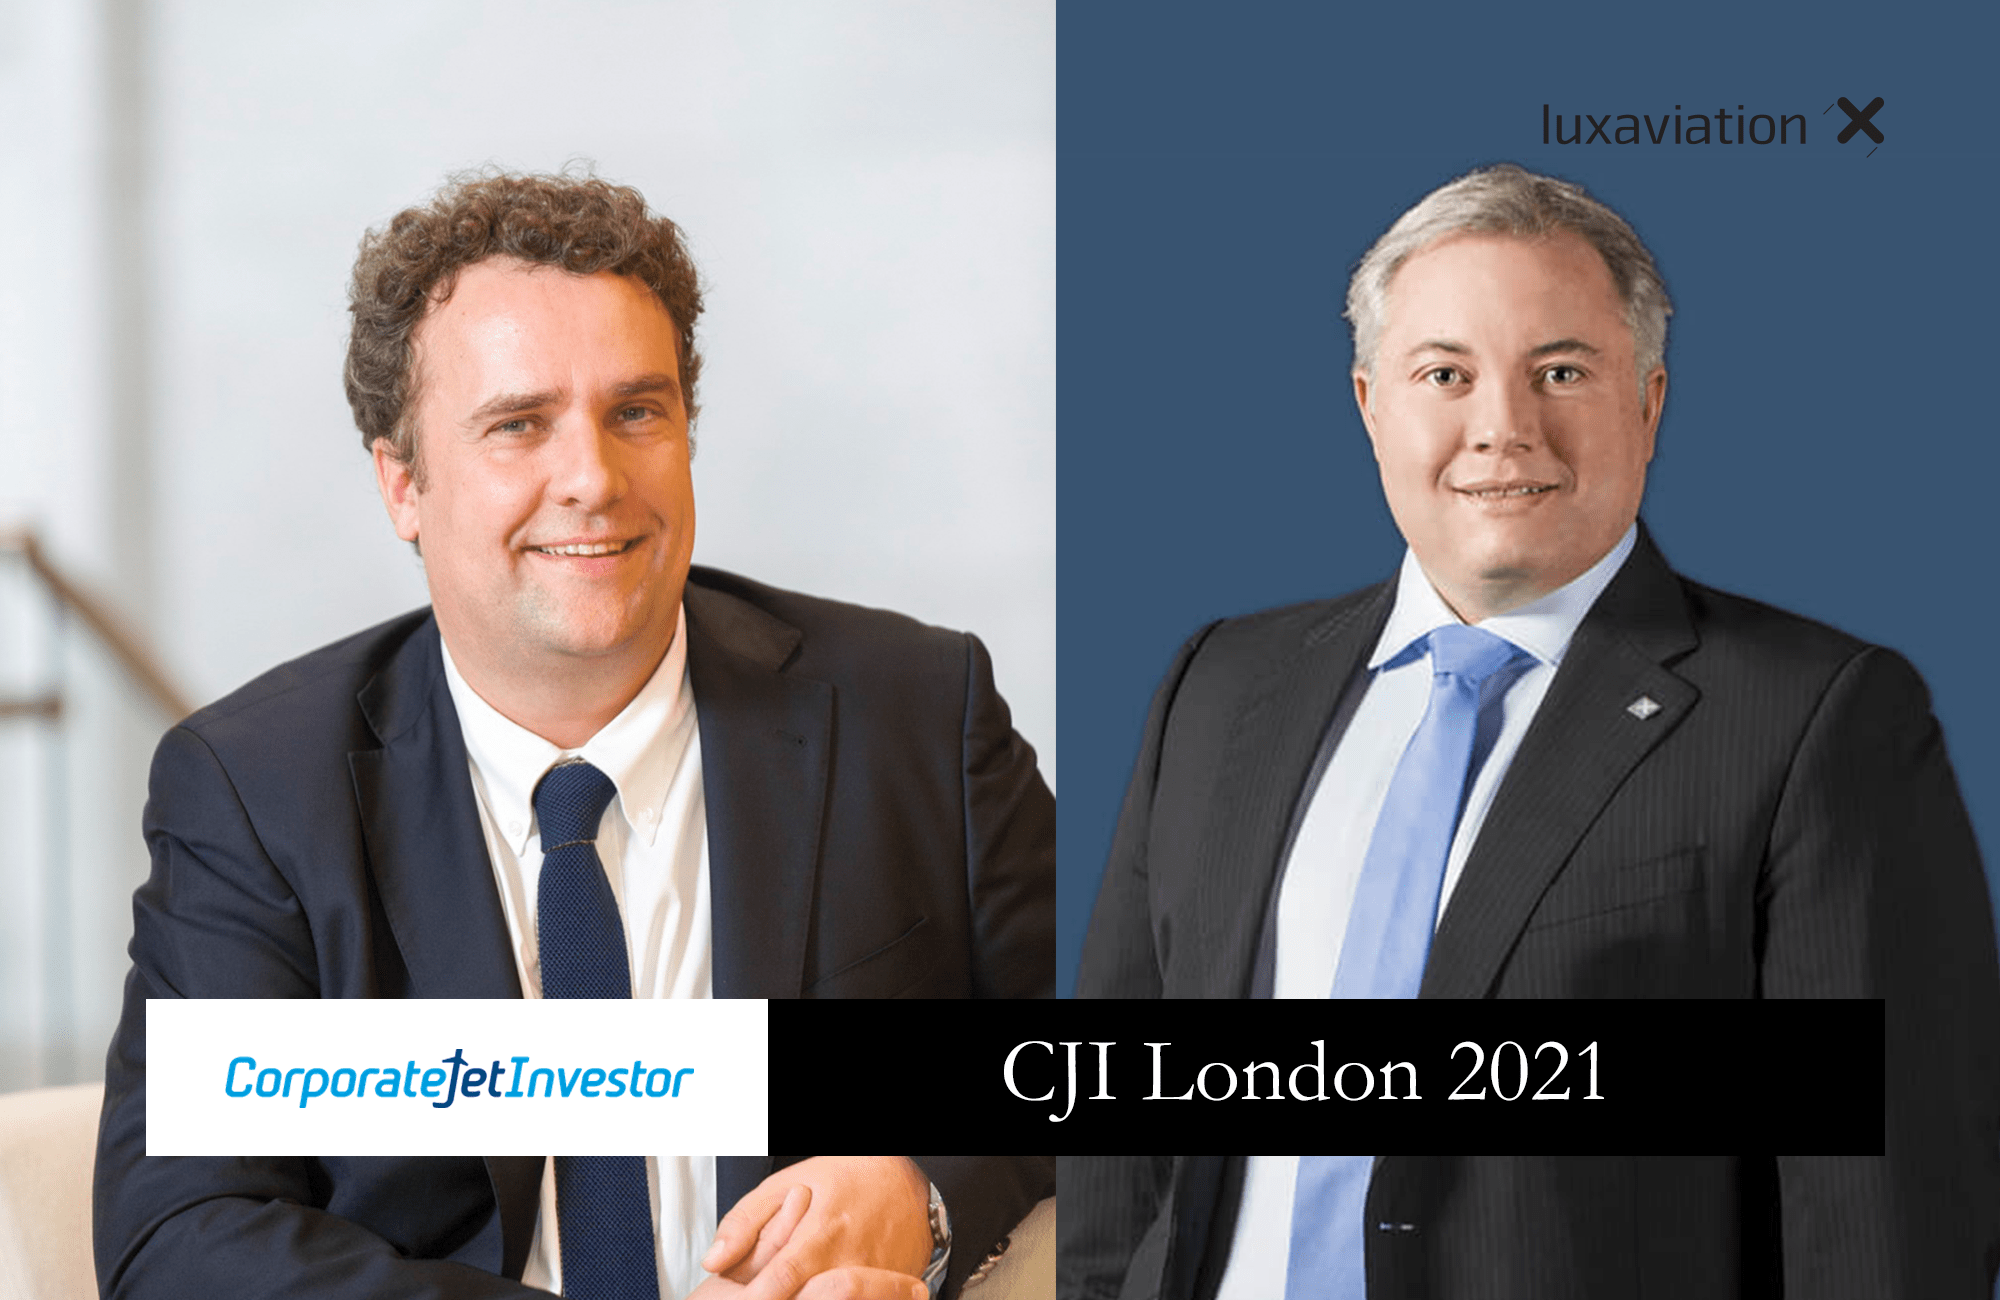 Luxaviation Group is participating in Corporate Jet Investor London 2021